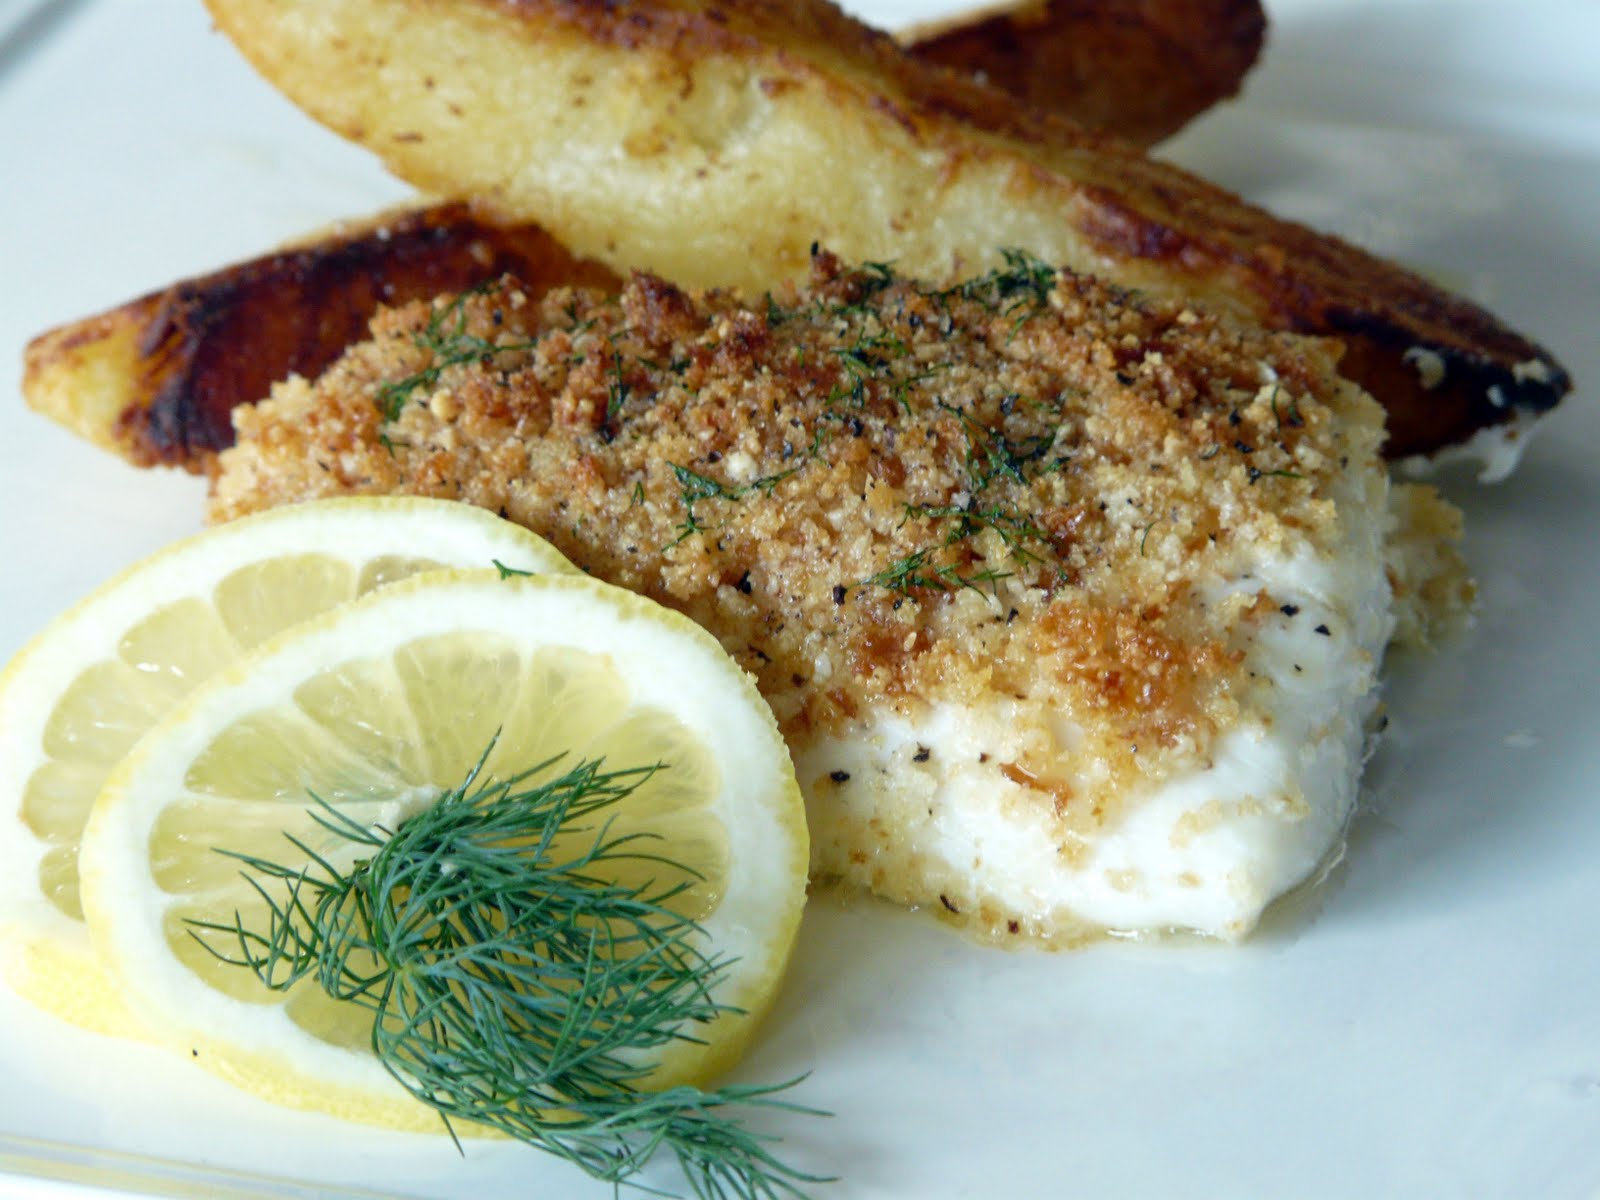 ... bread savory bread pudding baked fish with savory bread crumbs james